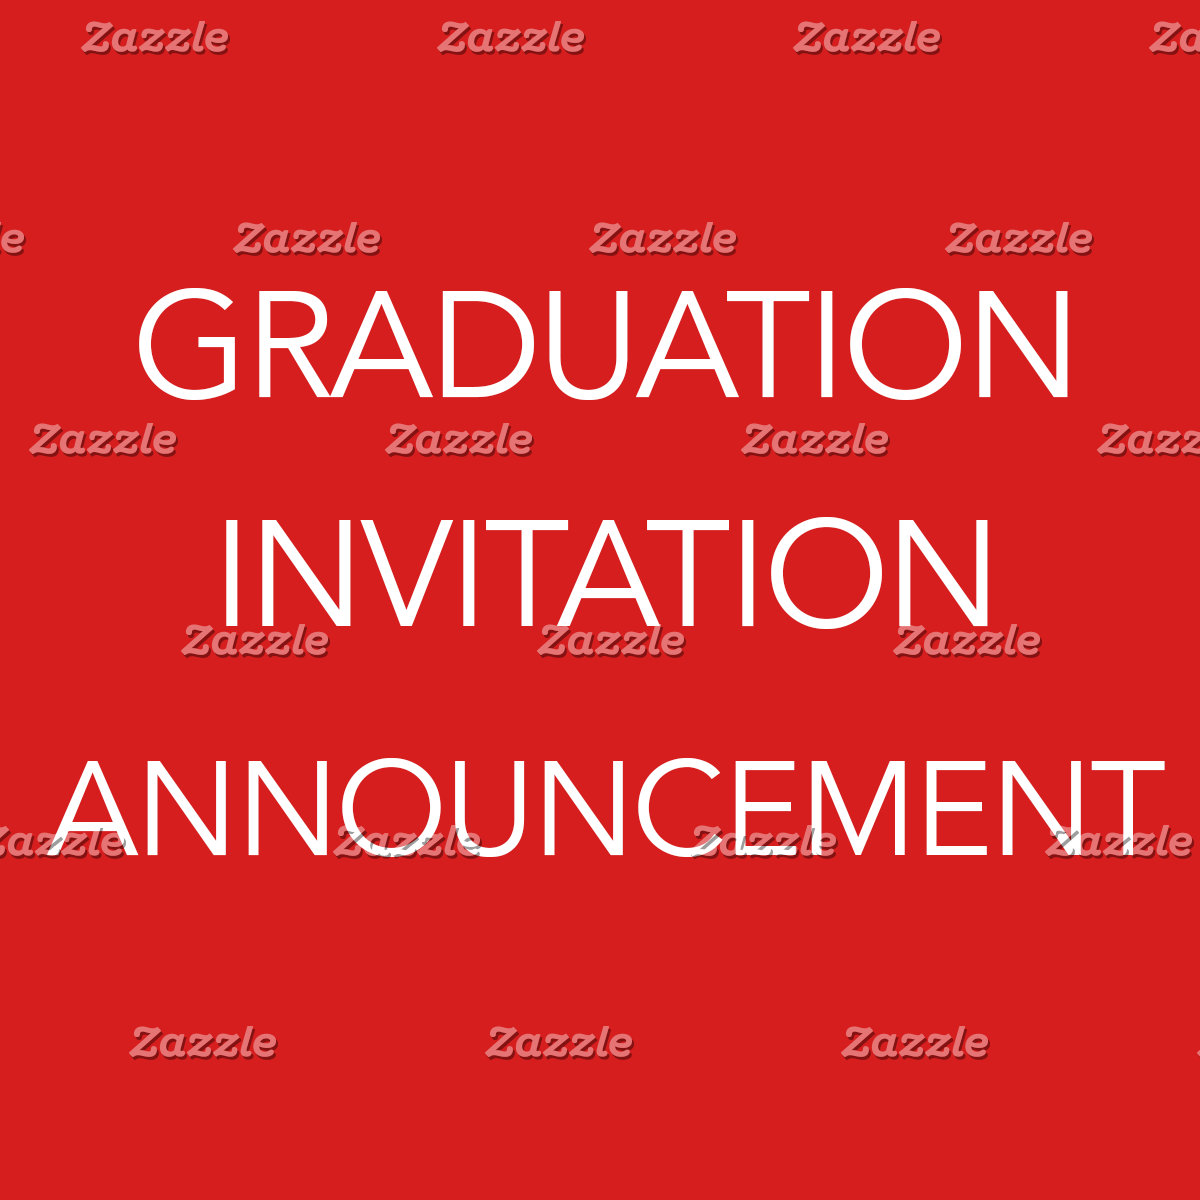 Graduation Invitation/Announcement